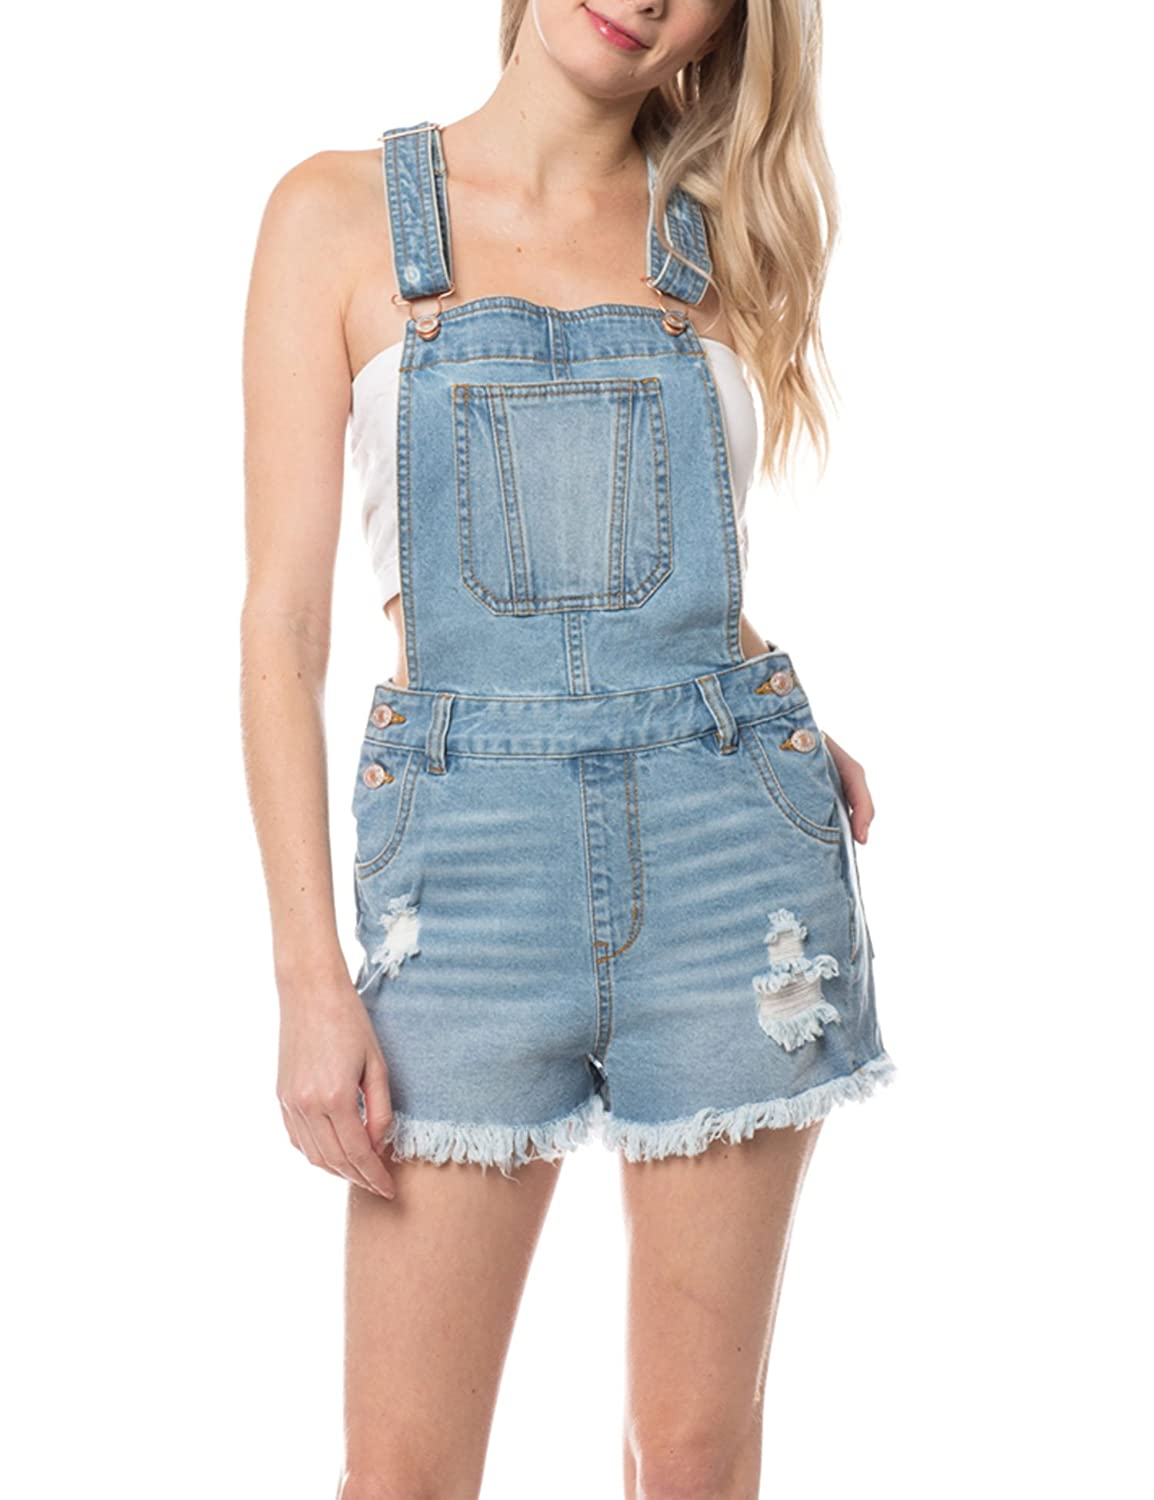 KOGMO Womens Distressed /& Washed Denim Overall Romper With Raw Hemline